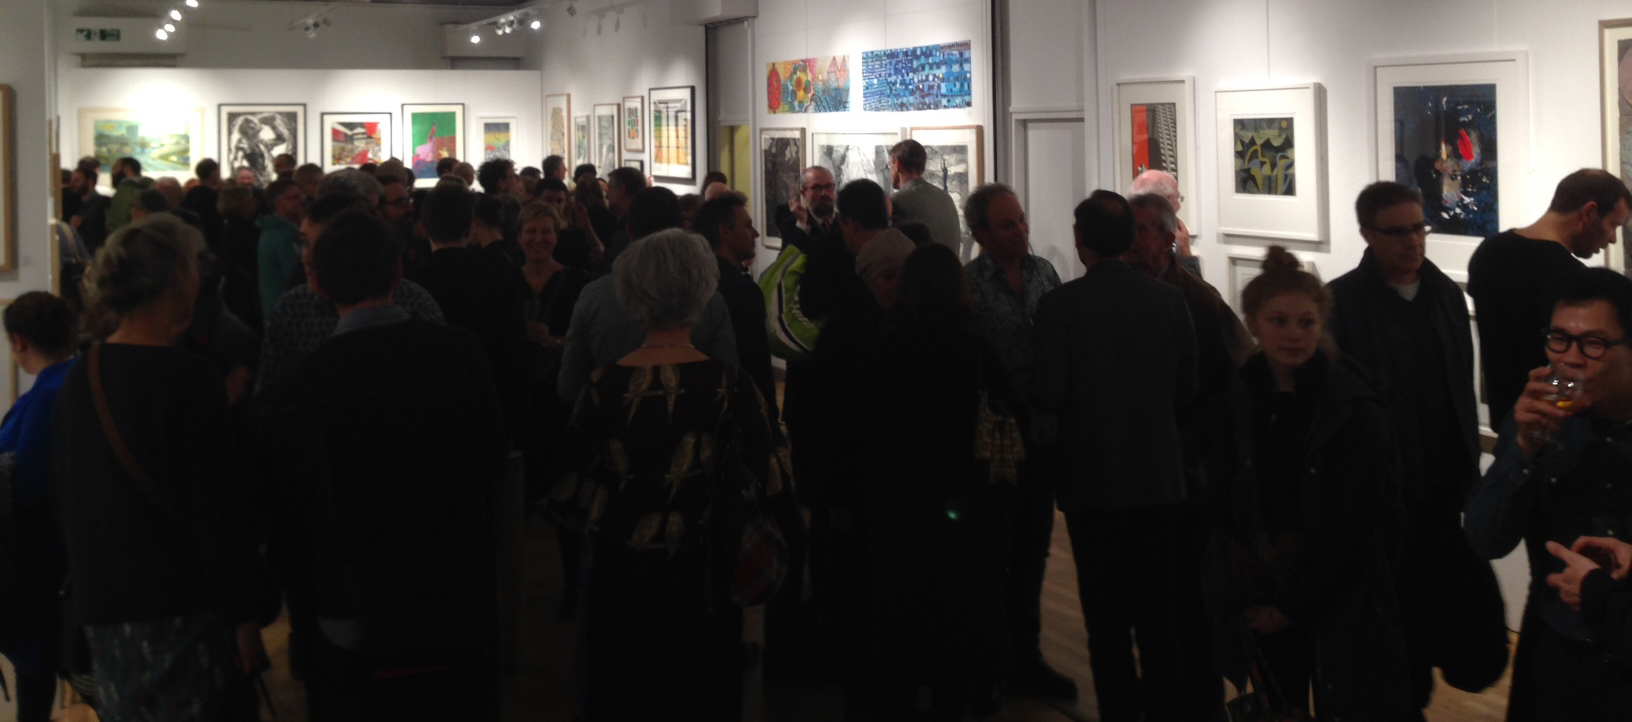 Private view at Bankside Gallery, Tuesday 3rd November